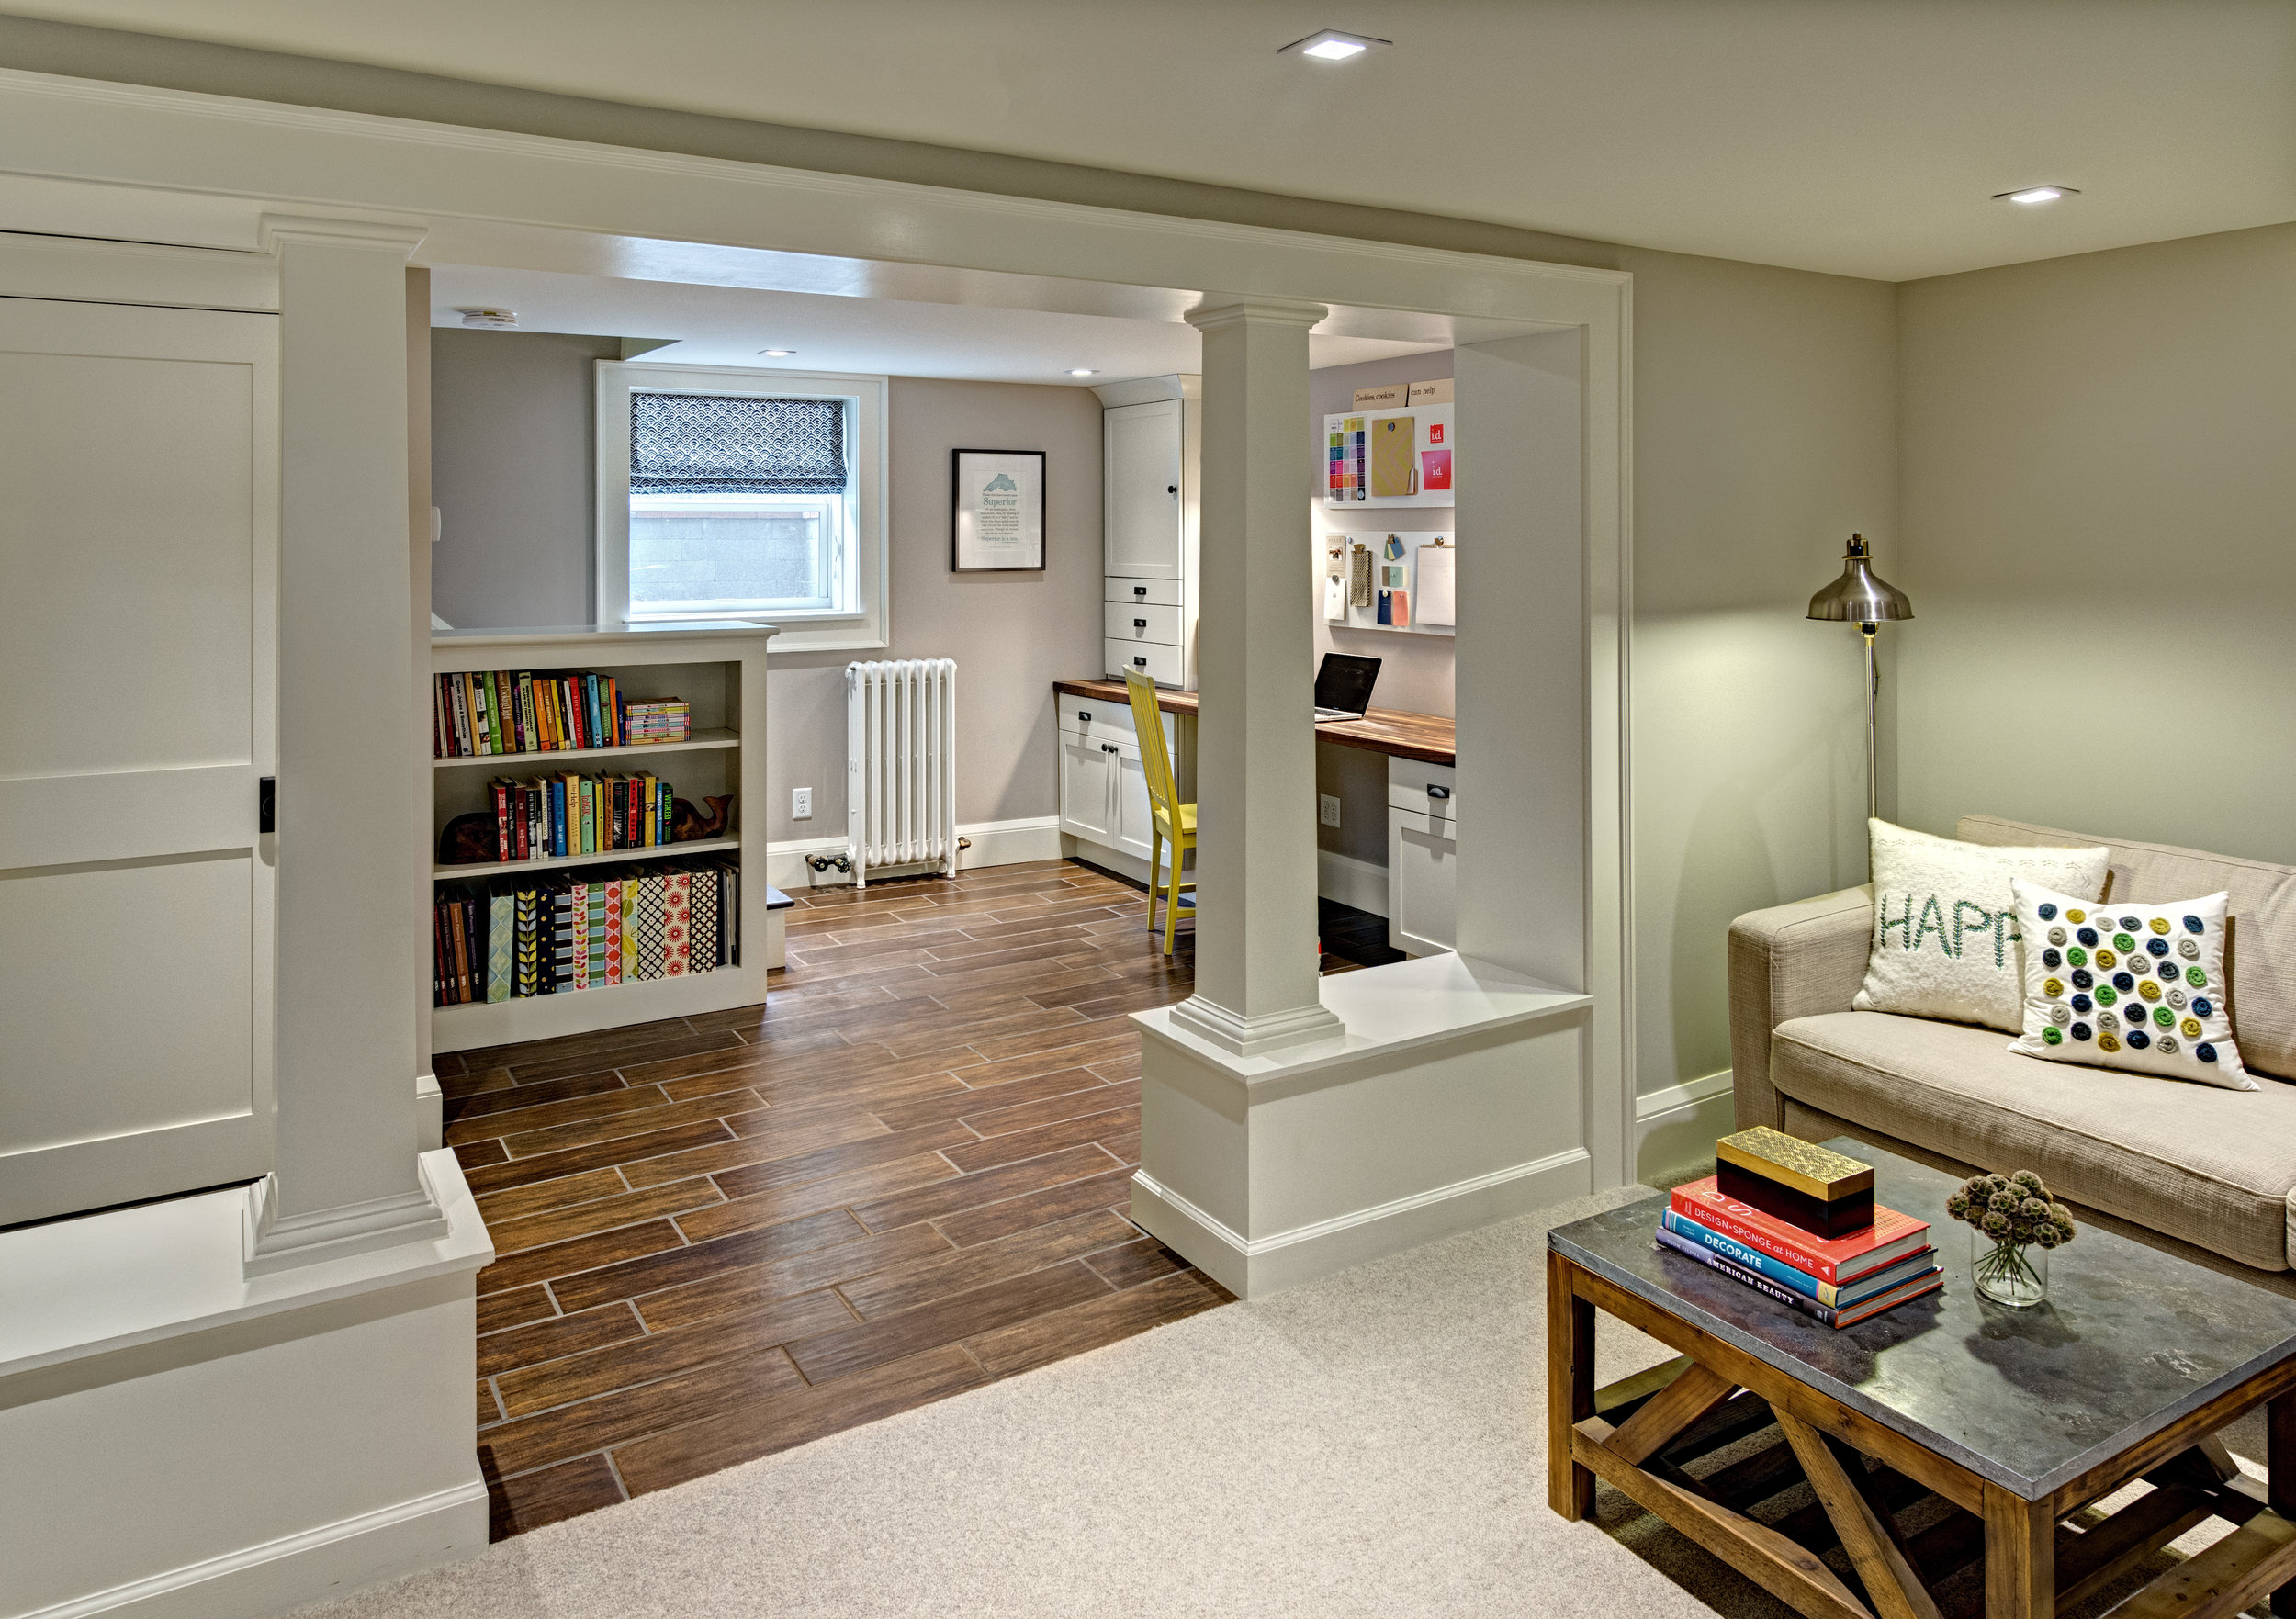 Integrated columns and a built-in bookcase help blend the new space with the older, original pieces of the home.